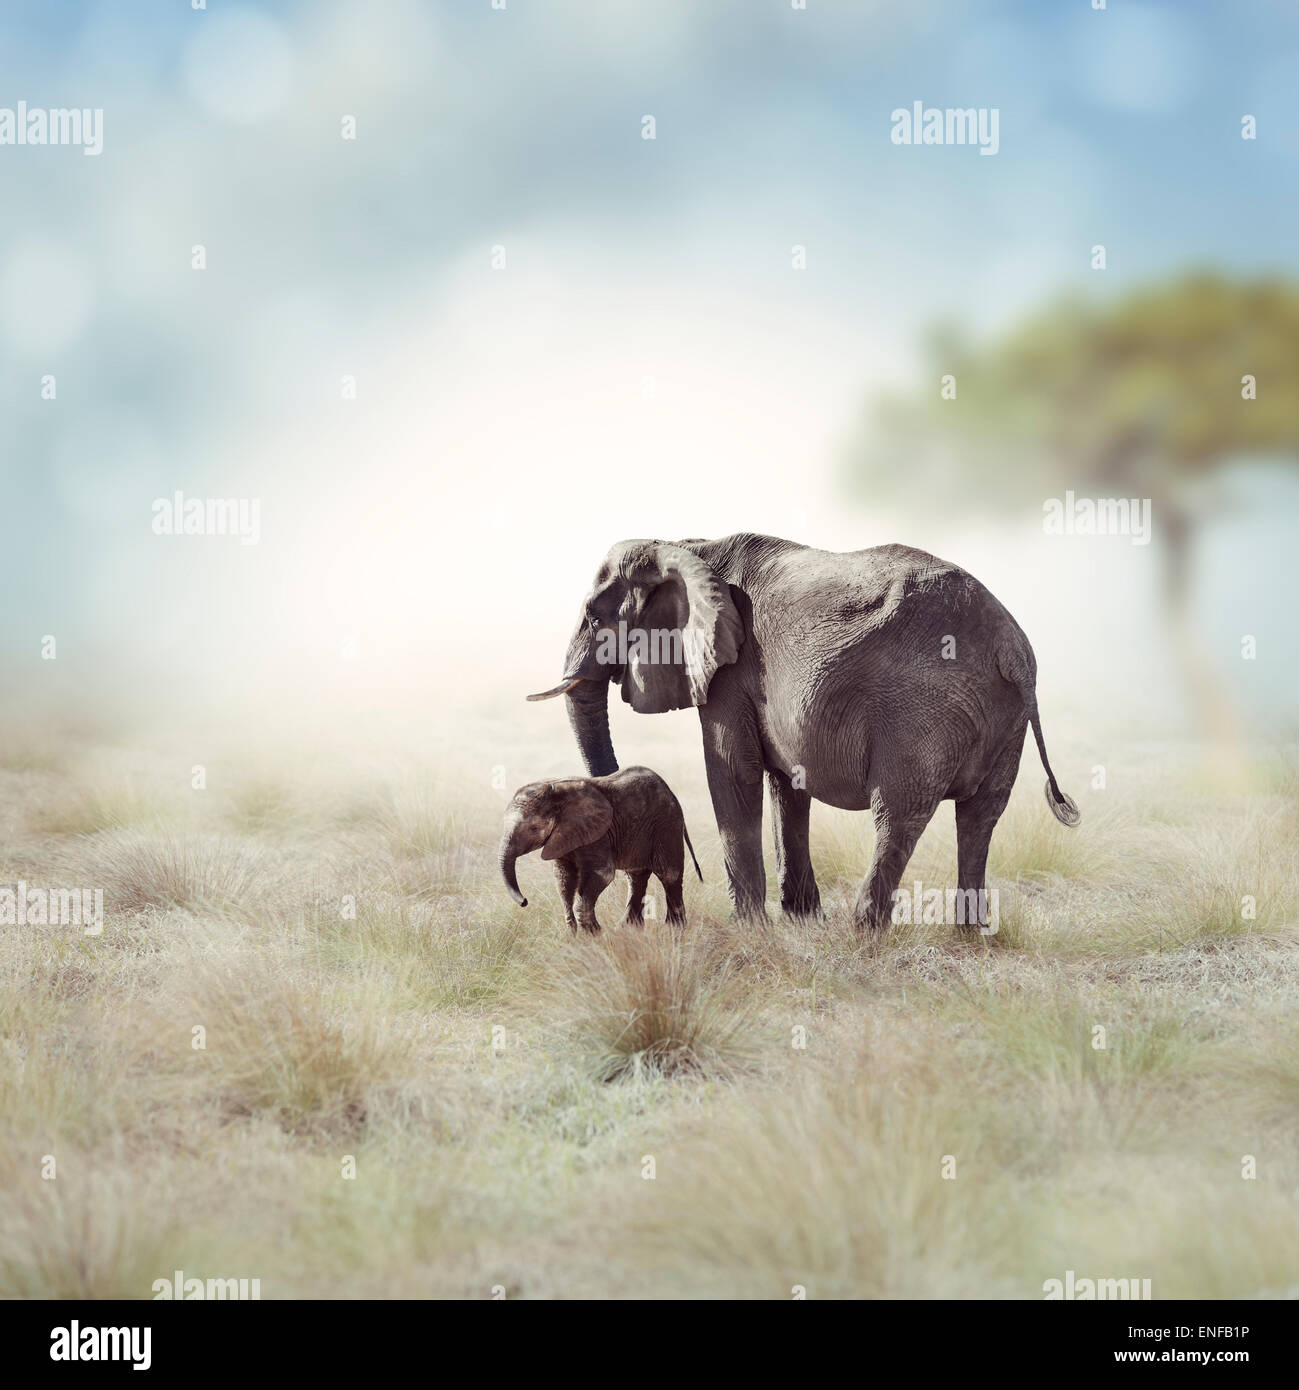 Young Elephant With Its Mother - Stock Image